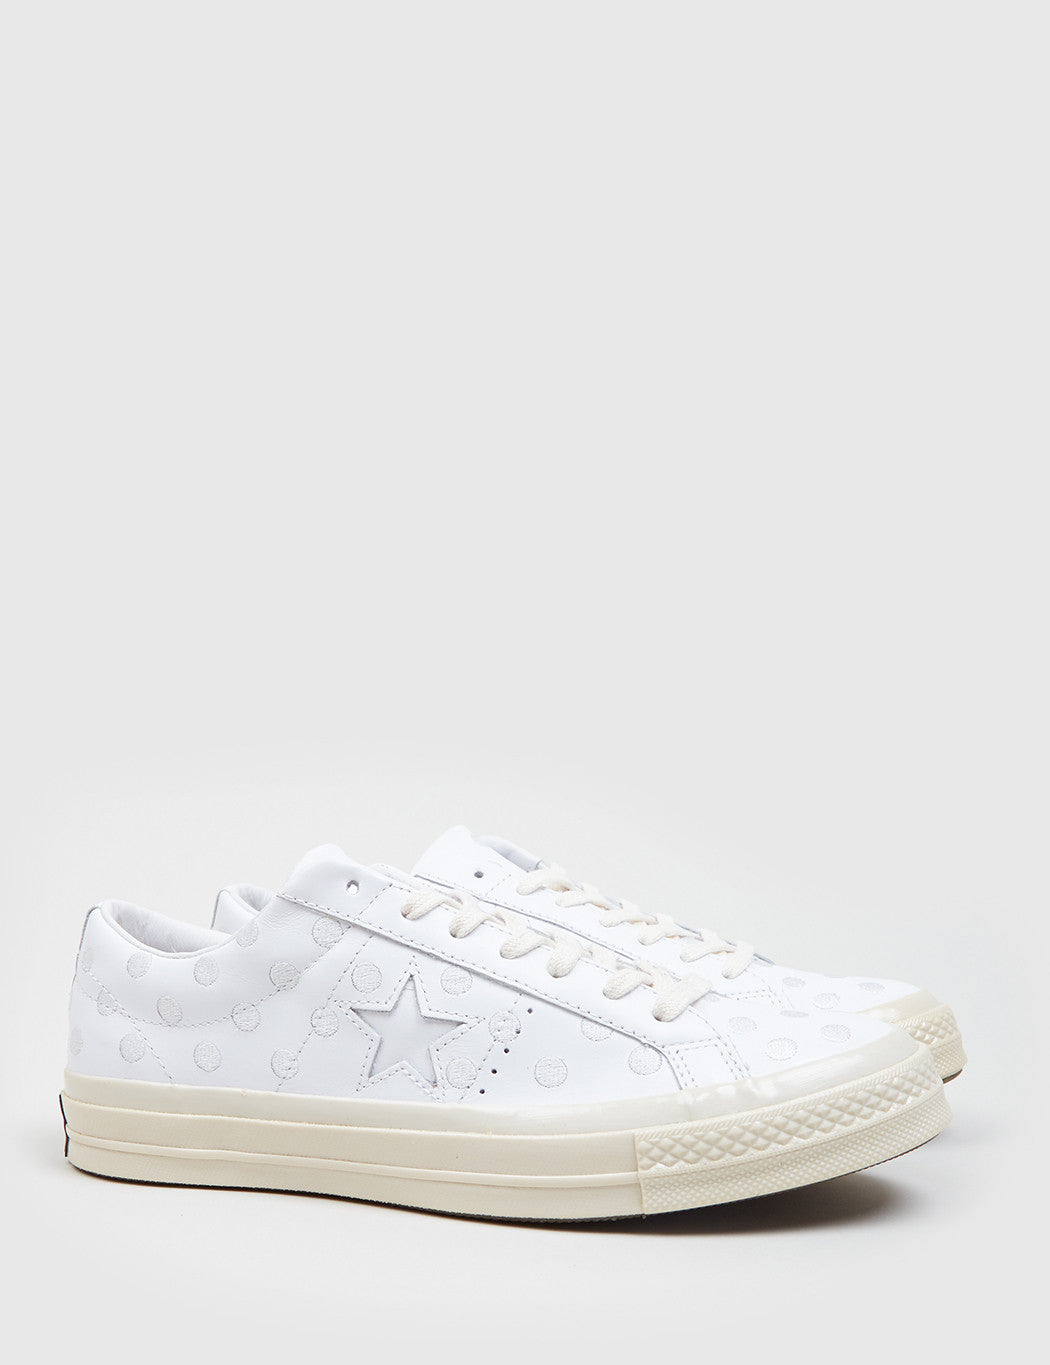 ... best price converse leather one star 74 polkadot leather white d174b  12572 d7d1a8a2a